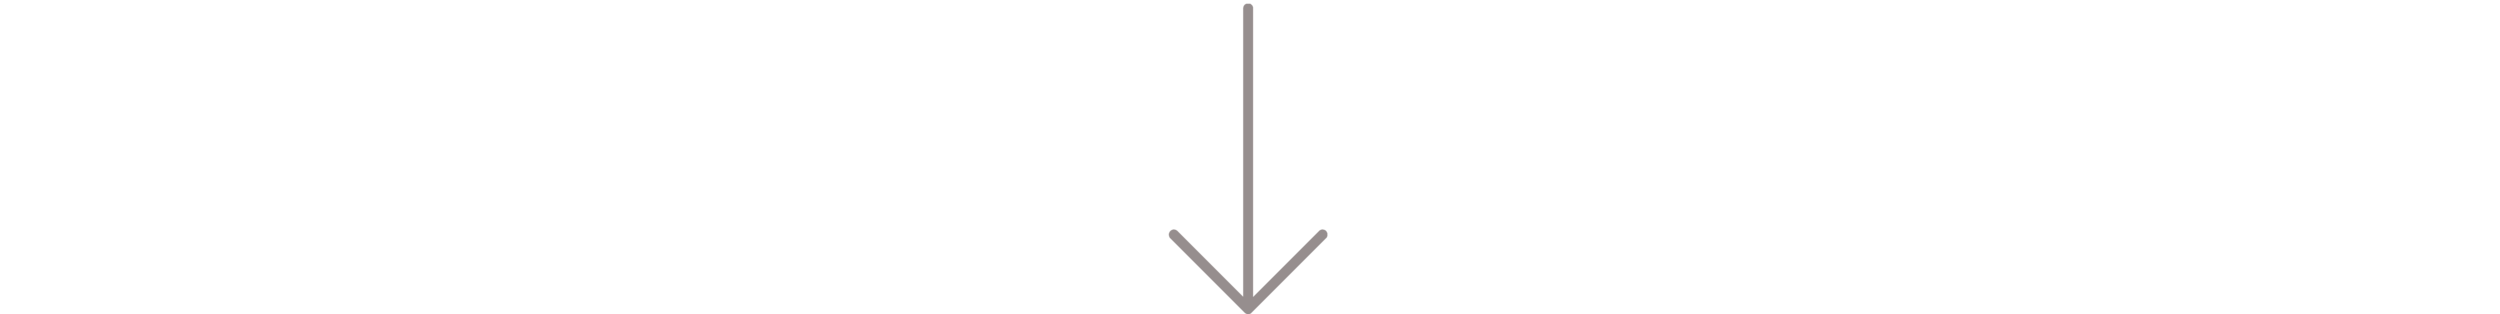 Arrow Pointing Down Long.png